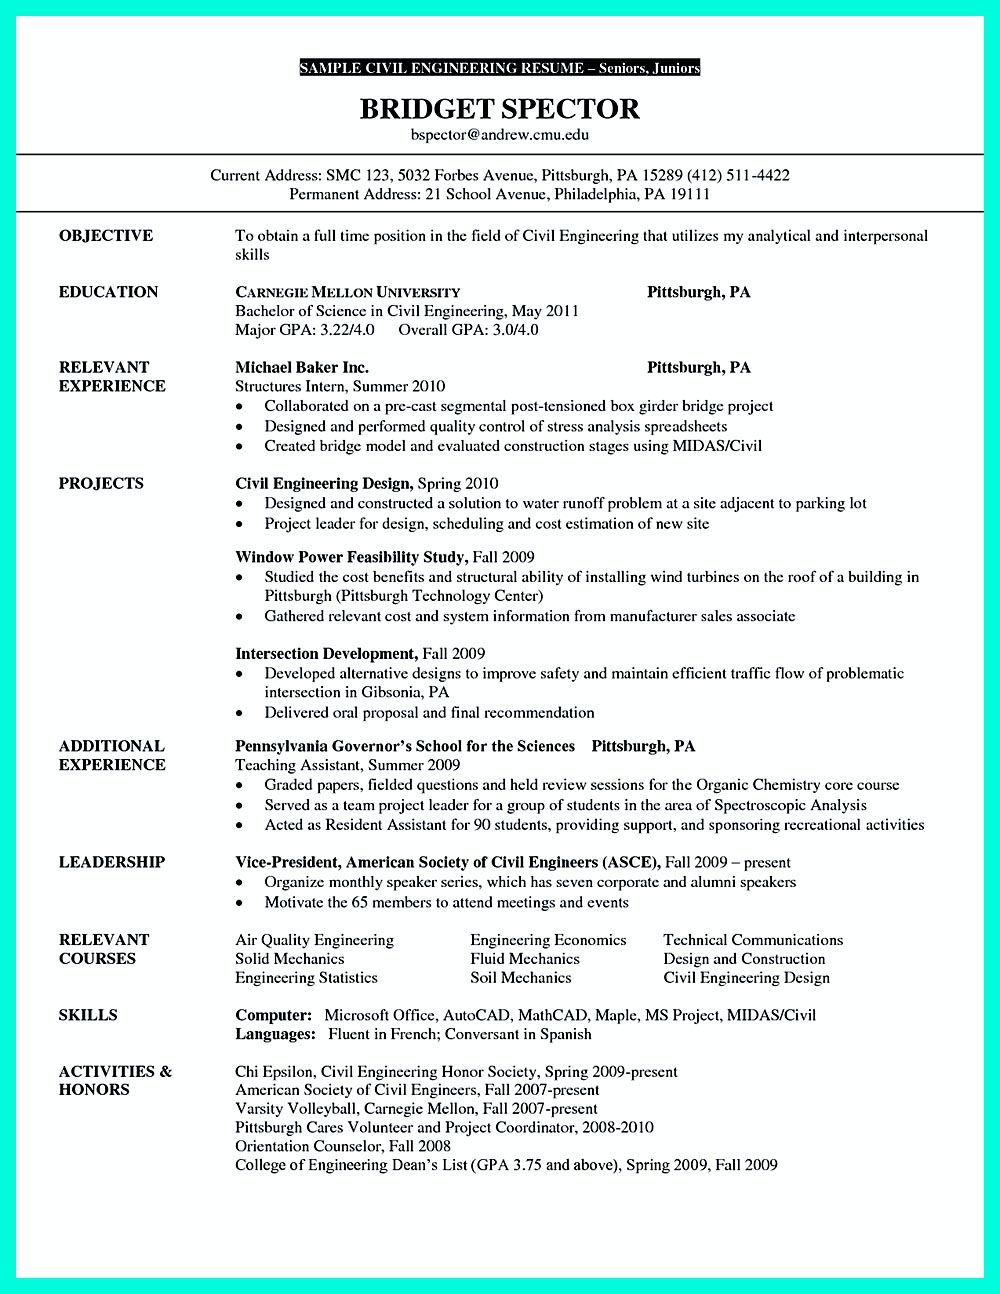 Chemical Engineering Resume There Are So Many Civil Engineering Resume Samples You Can